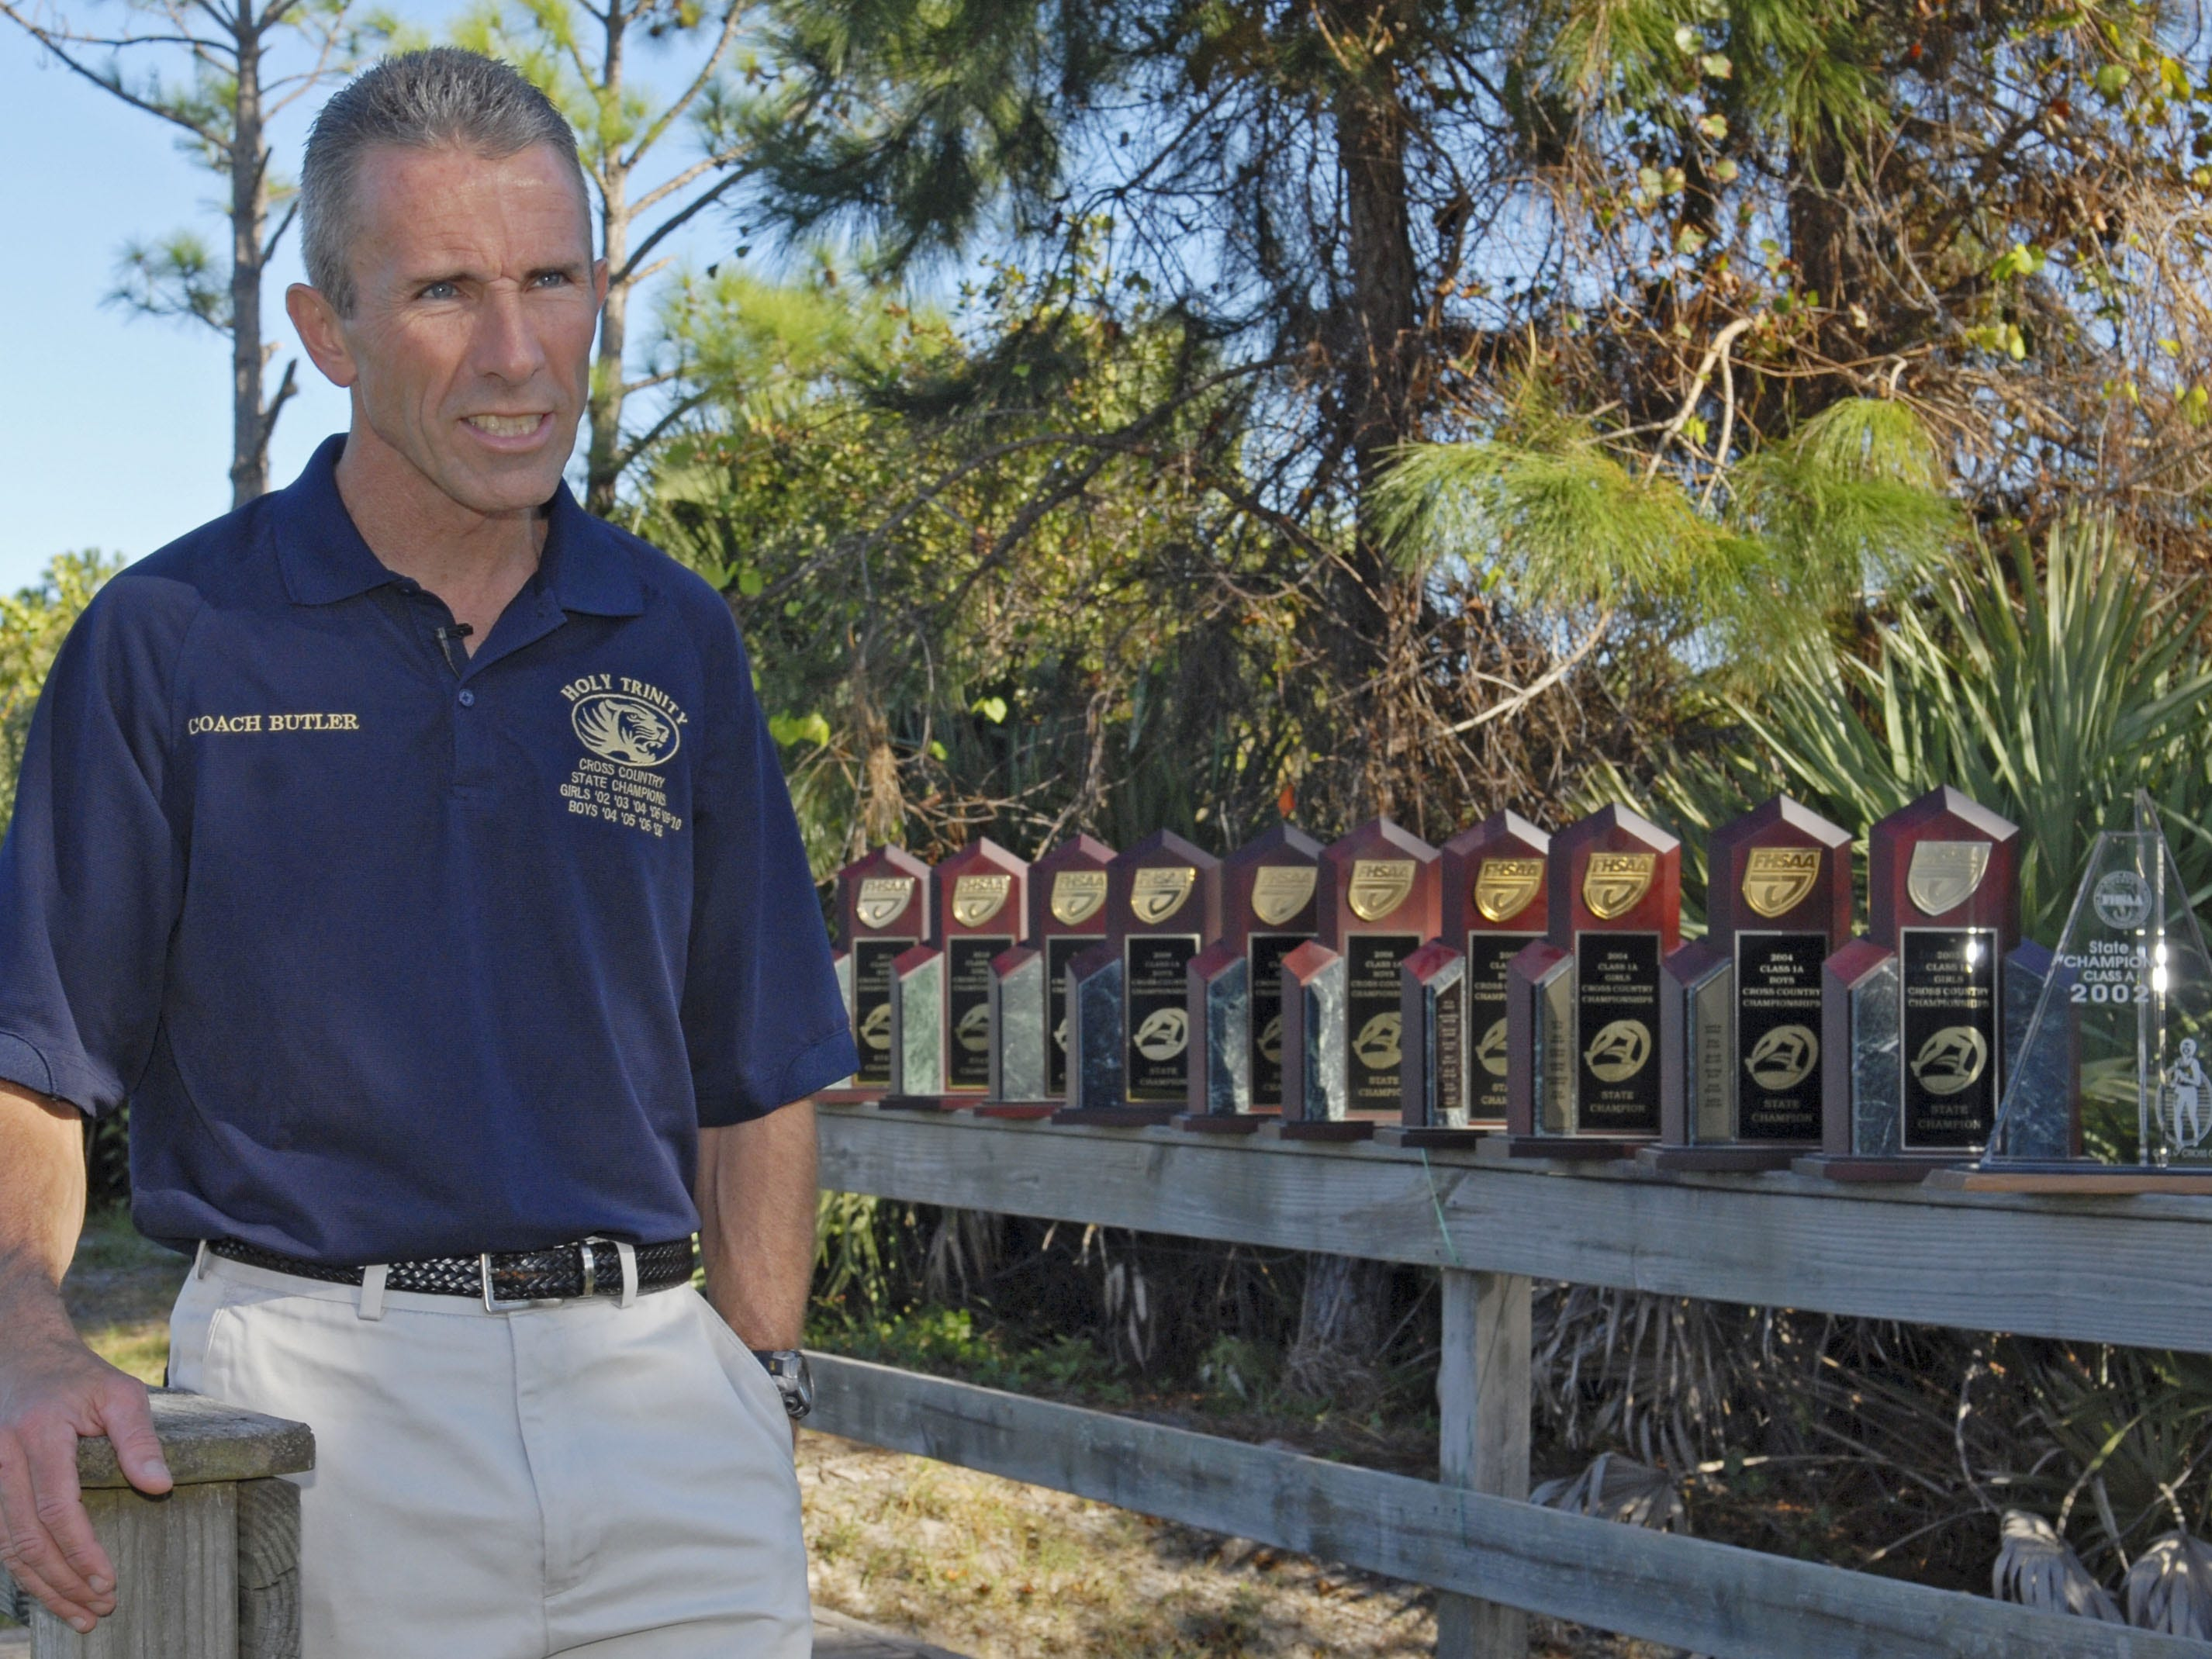 Doug Butler, coach at Holy Trinity Academy in Melbourne, with the state trophies his runners have won.